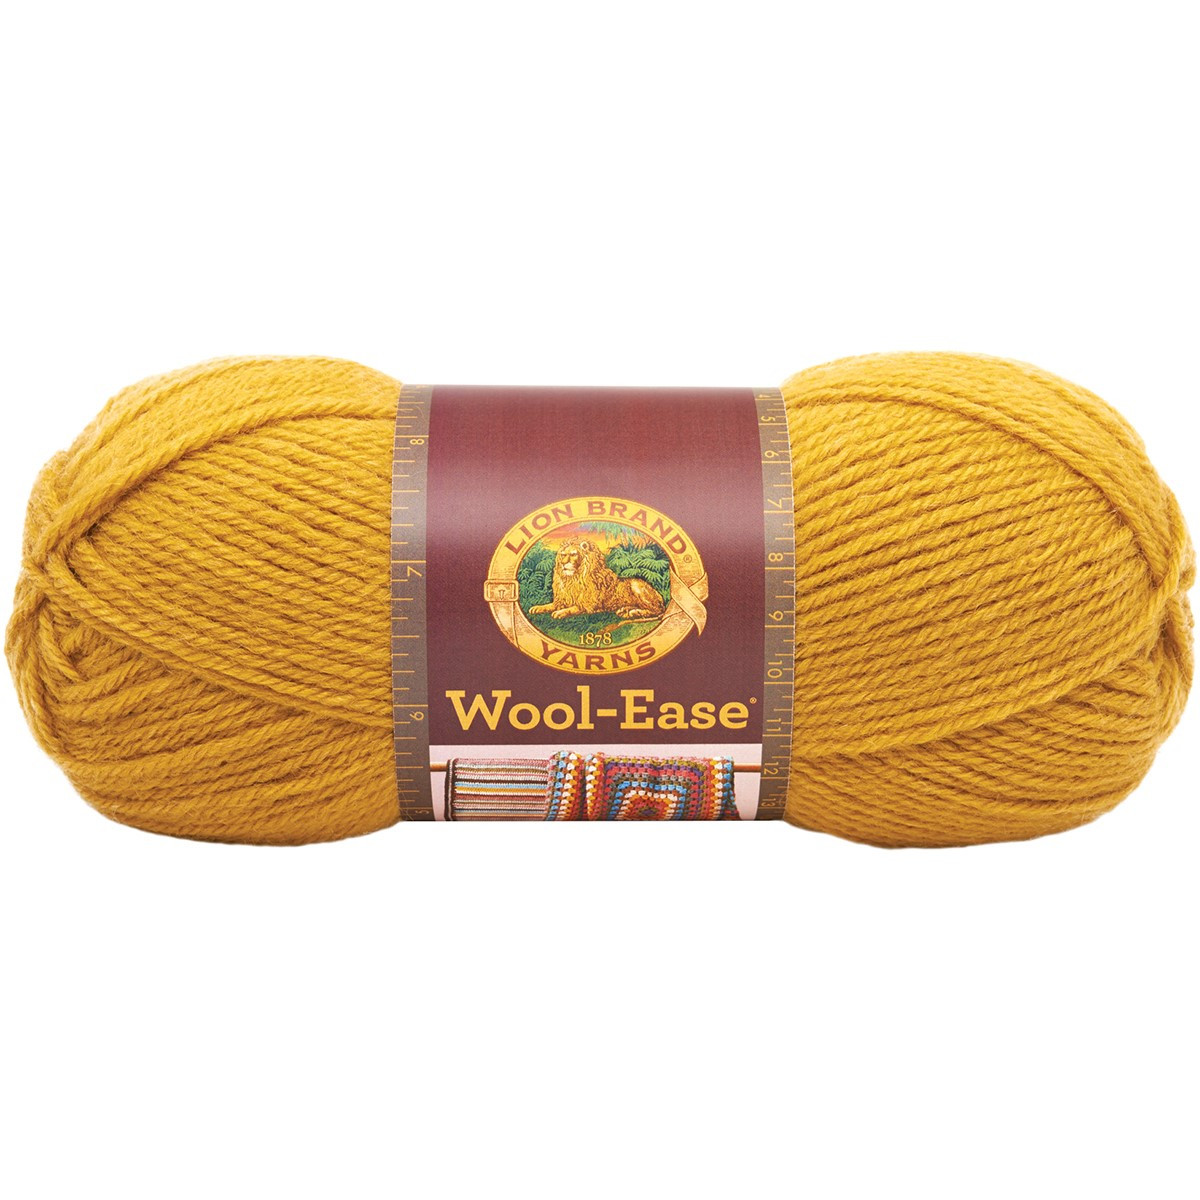 Lion Brand Wool Ease Beautiful Lion Brand Wool Ease Yarn Pack Of 3 Of Lion Brand Wool Ease Elegant Lion Brand Wool Ease Crochet Yarn & Wool